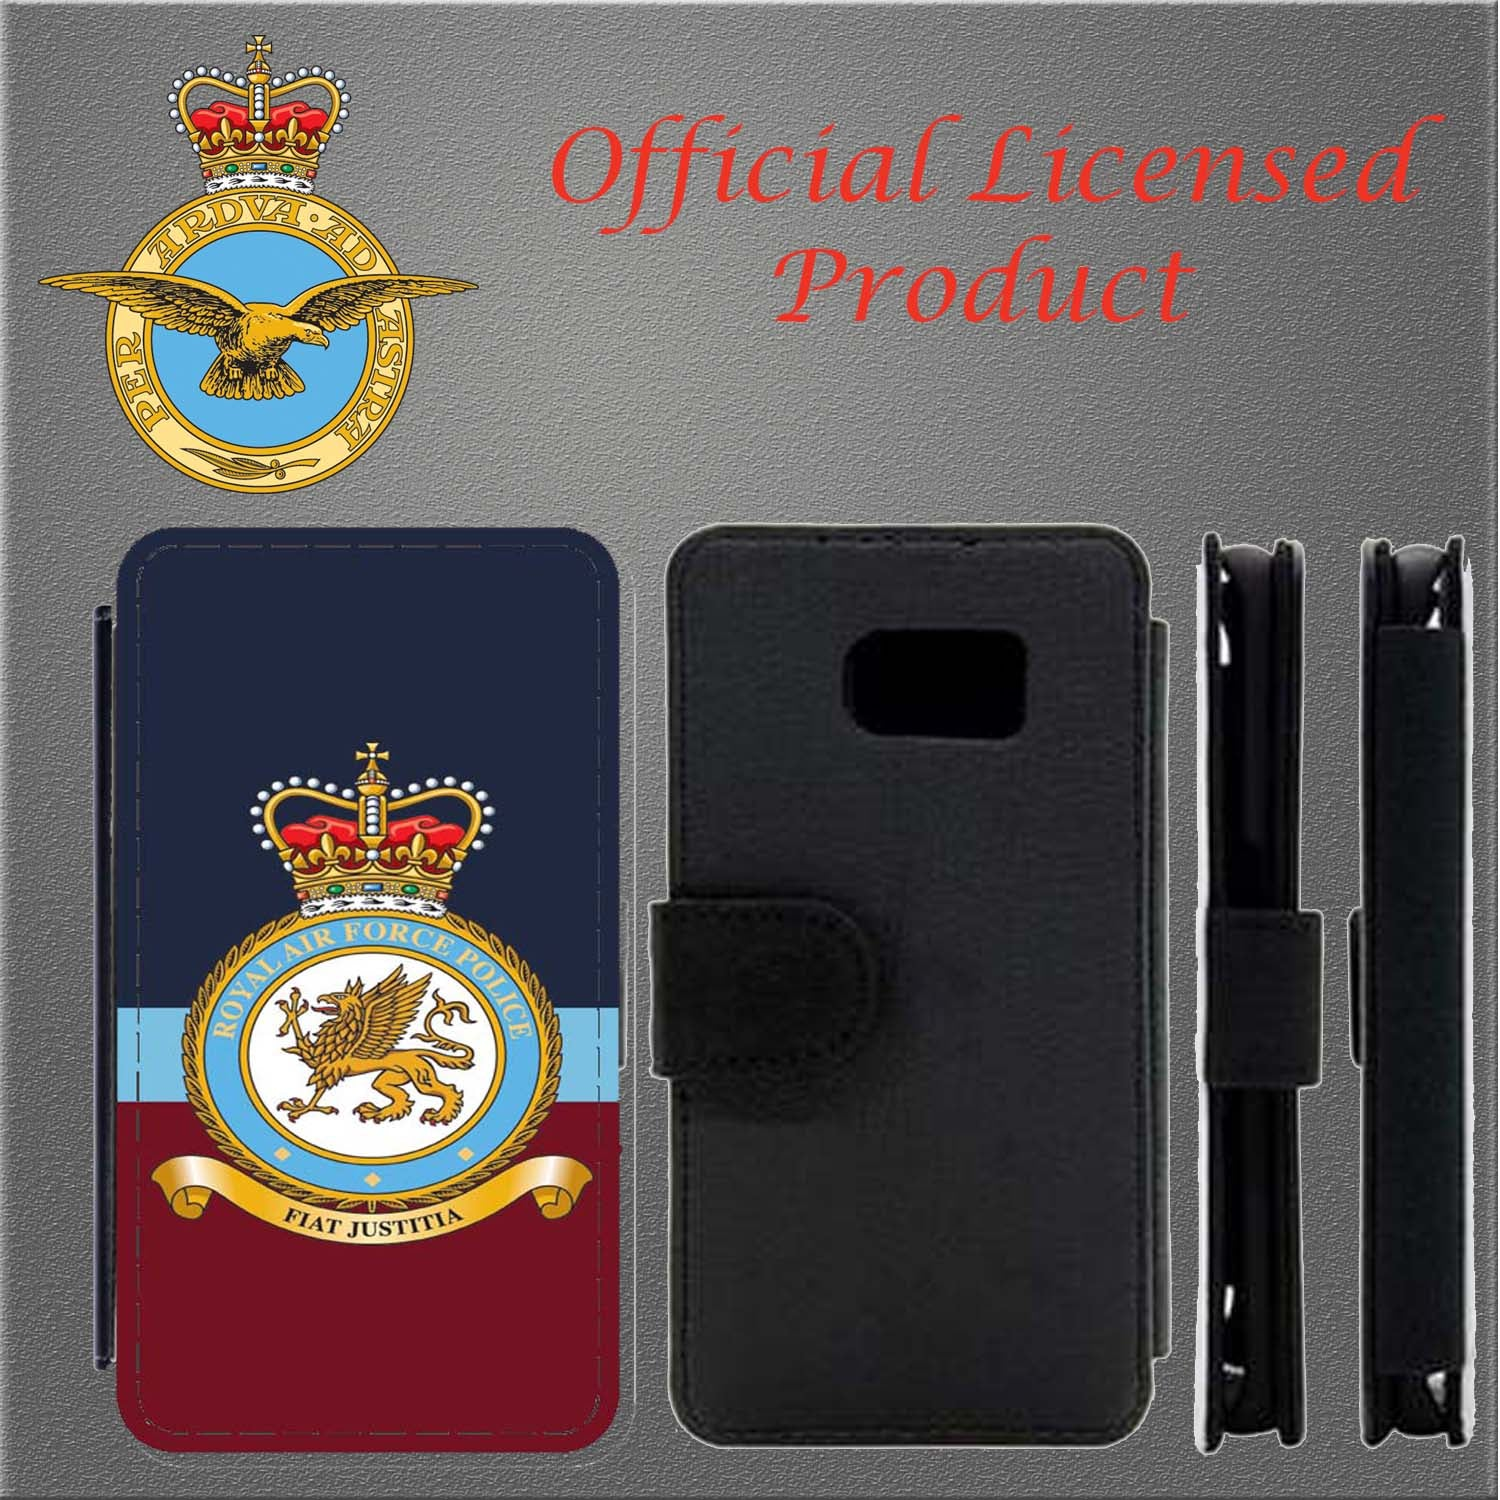 Royal Air Force Police Flip Case Cover Samsung Galaxy Flip Case Phone